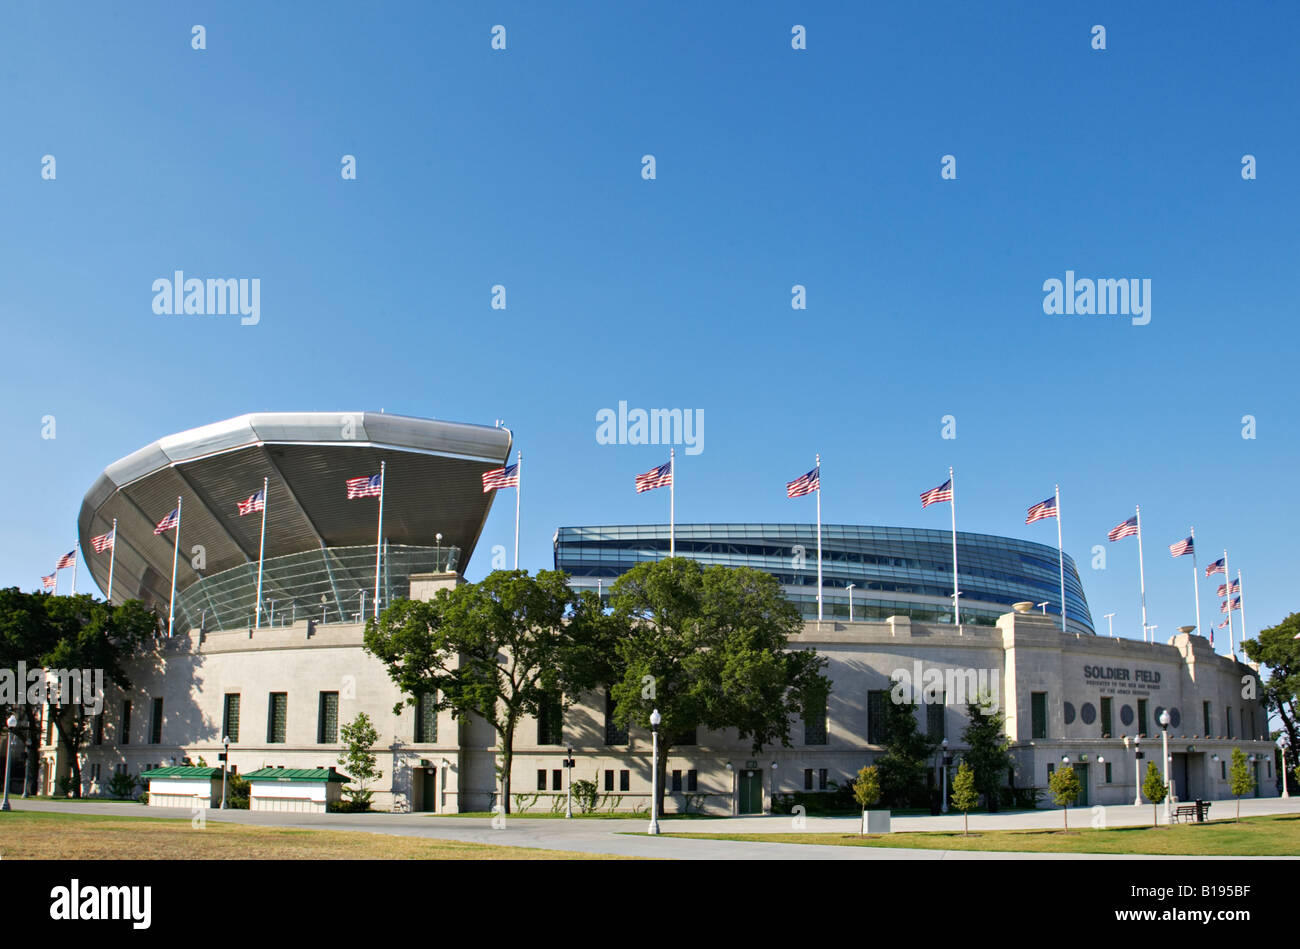 BUILDINGS Chicago Illinois Soldier Field redesigned football field home to Chicago Bears - Stock Image